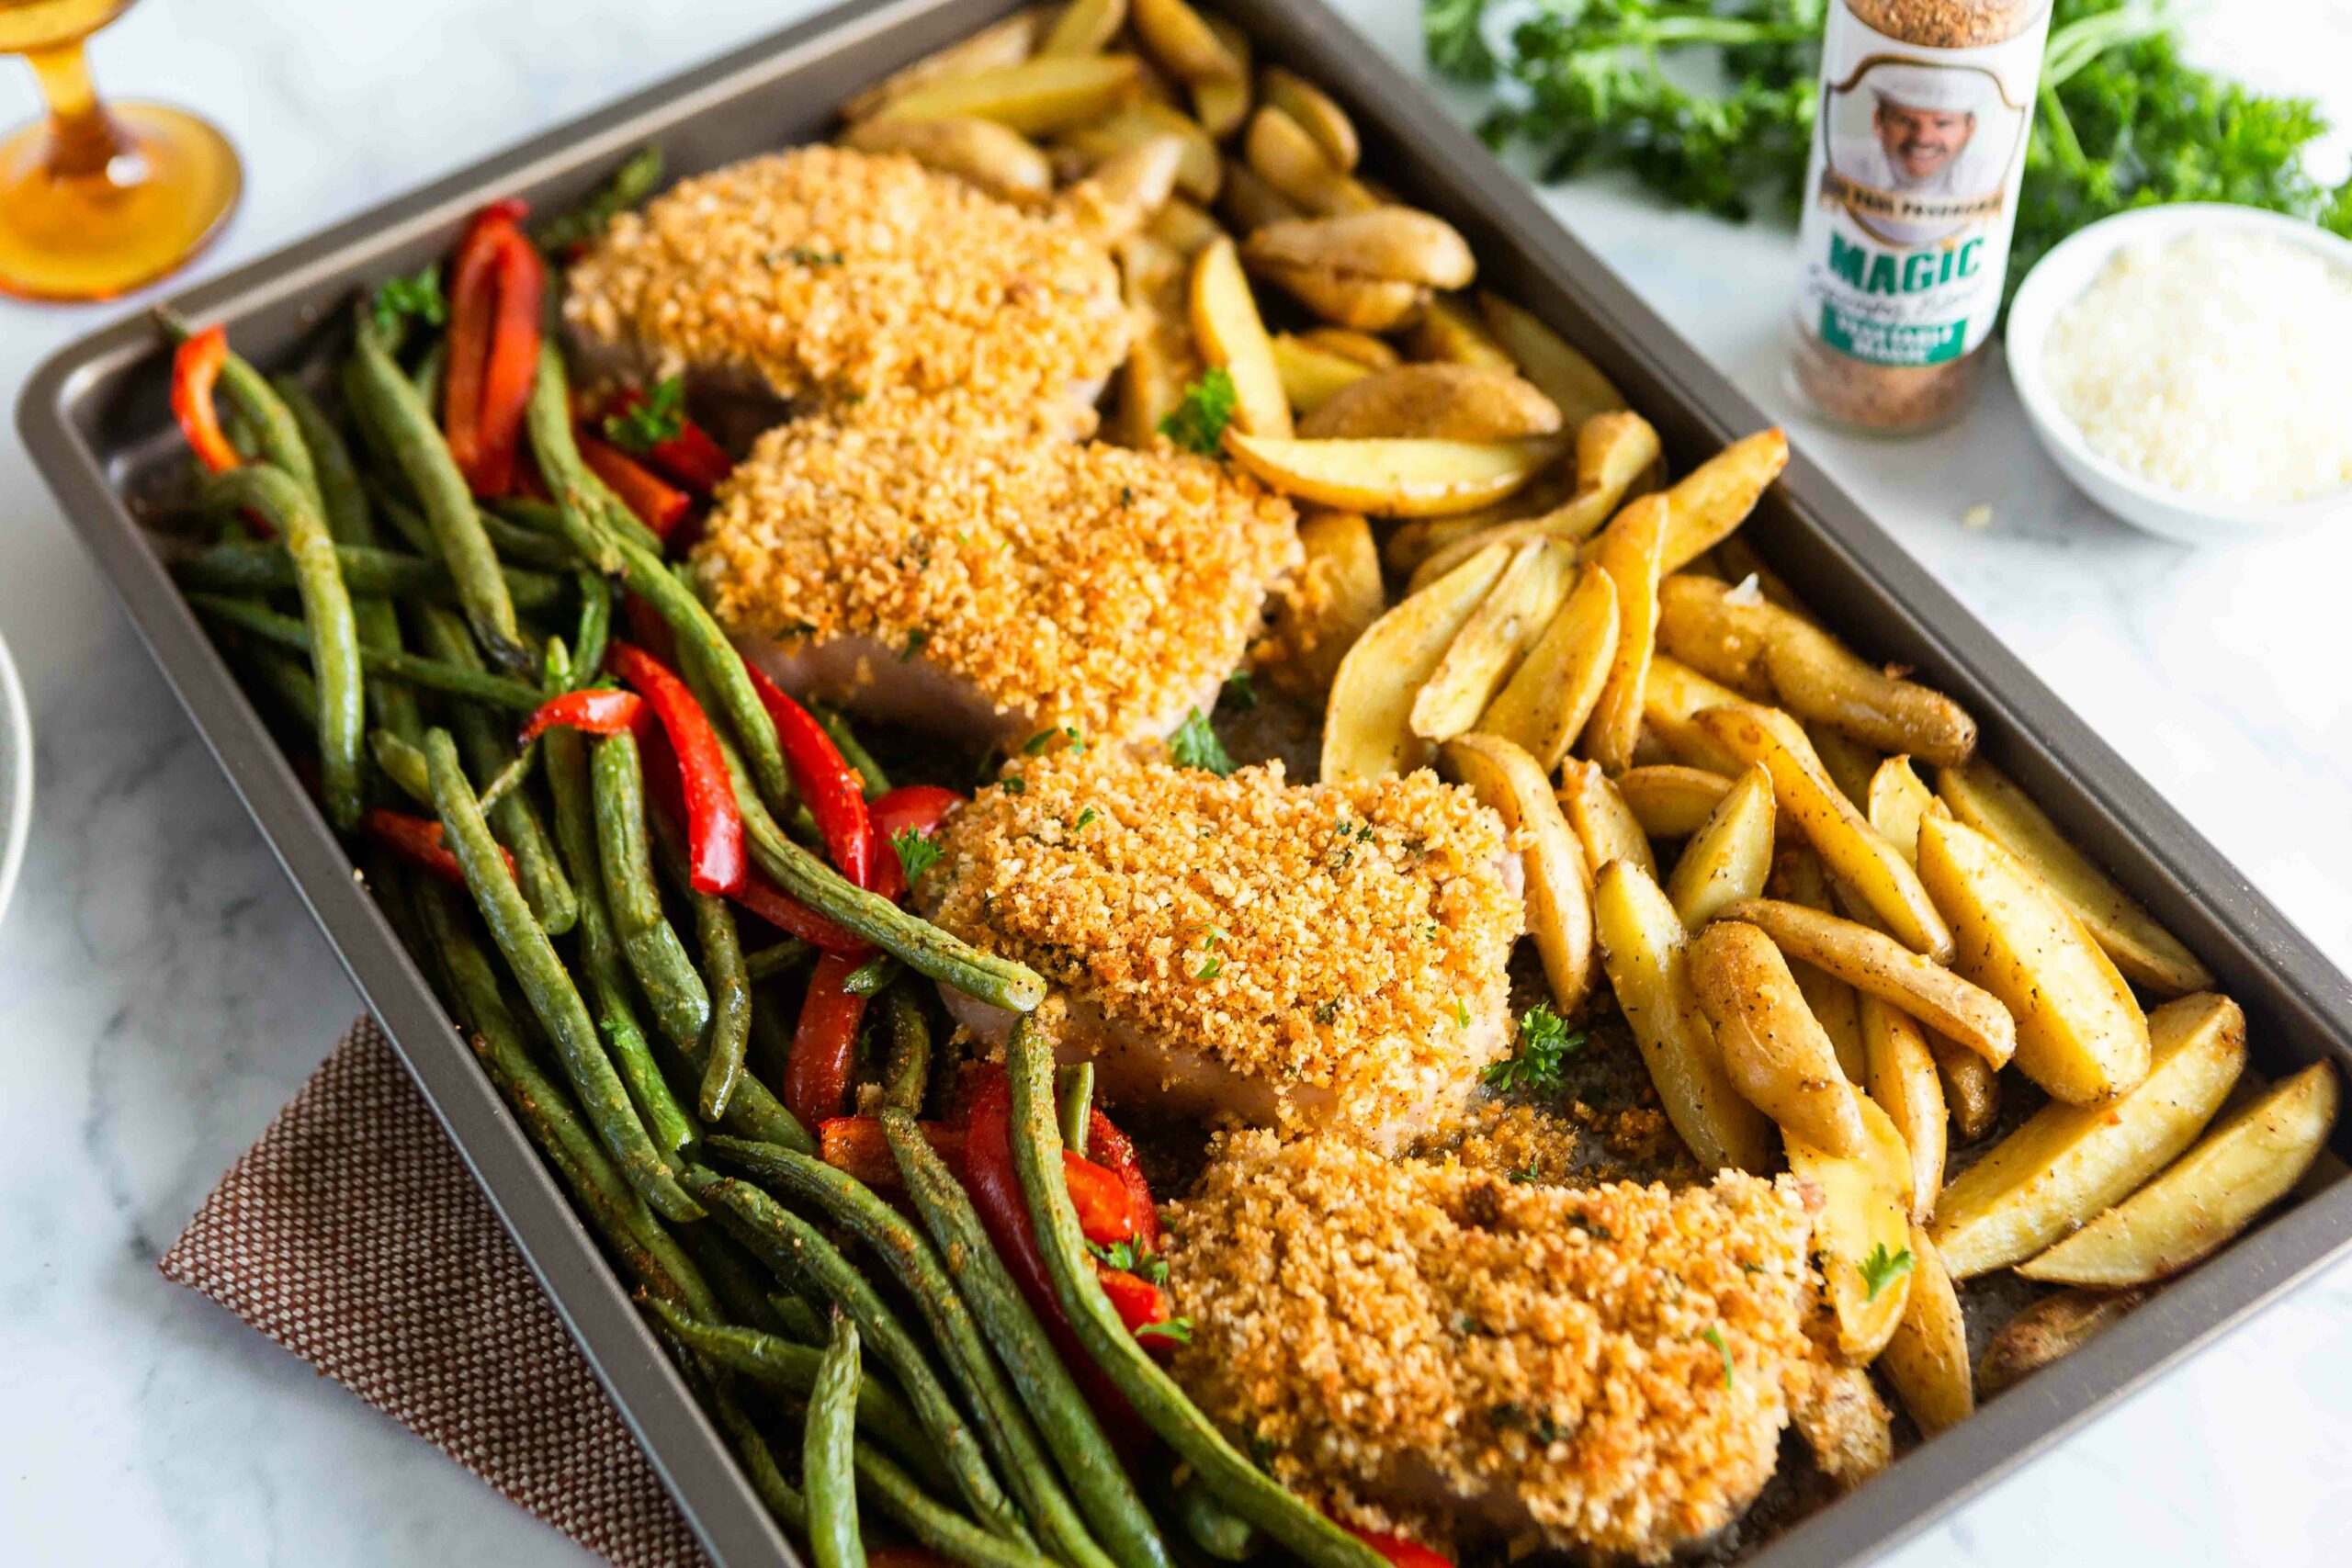 Sheet Pan Parmesan Pork Chops